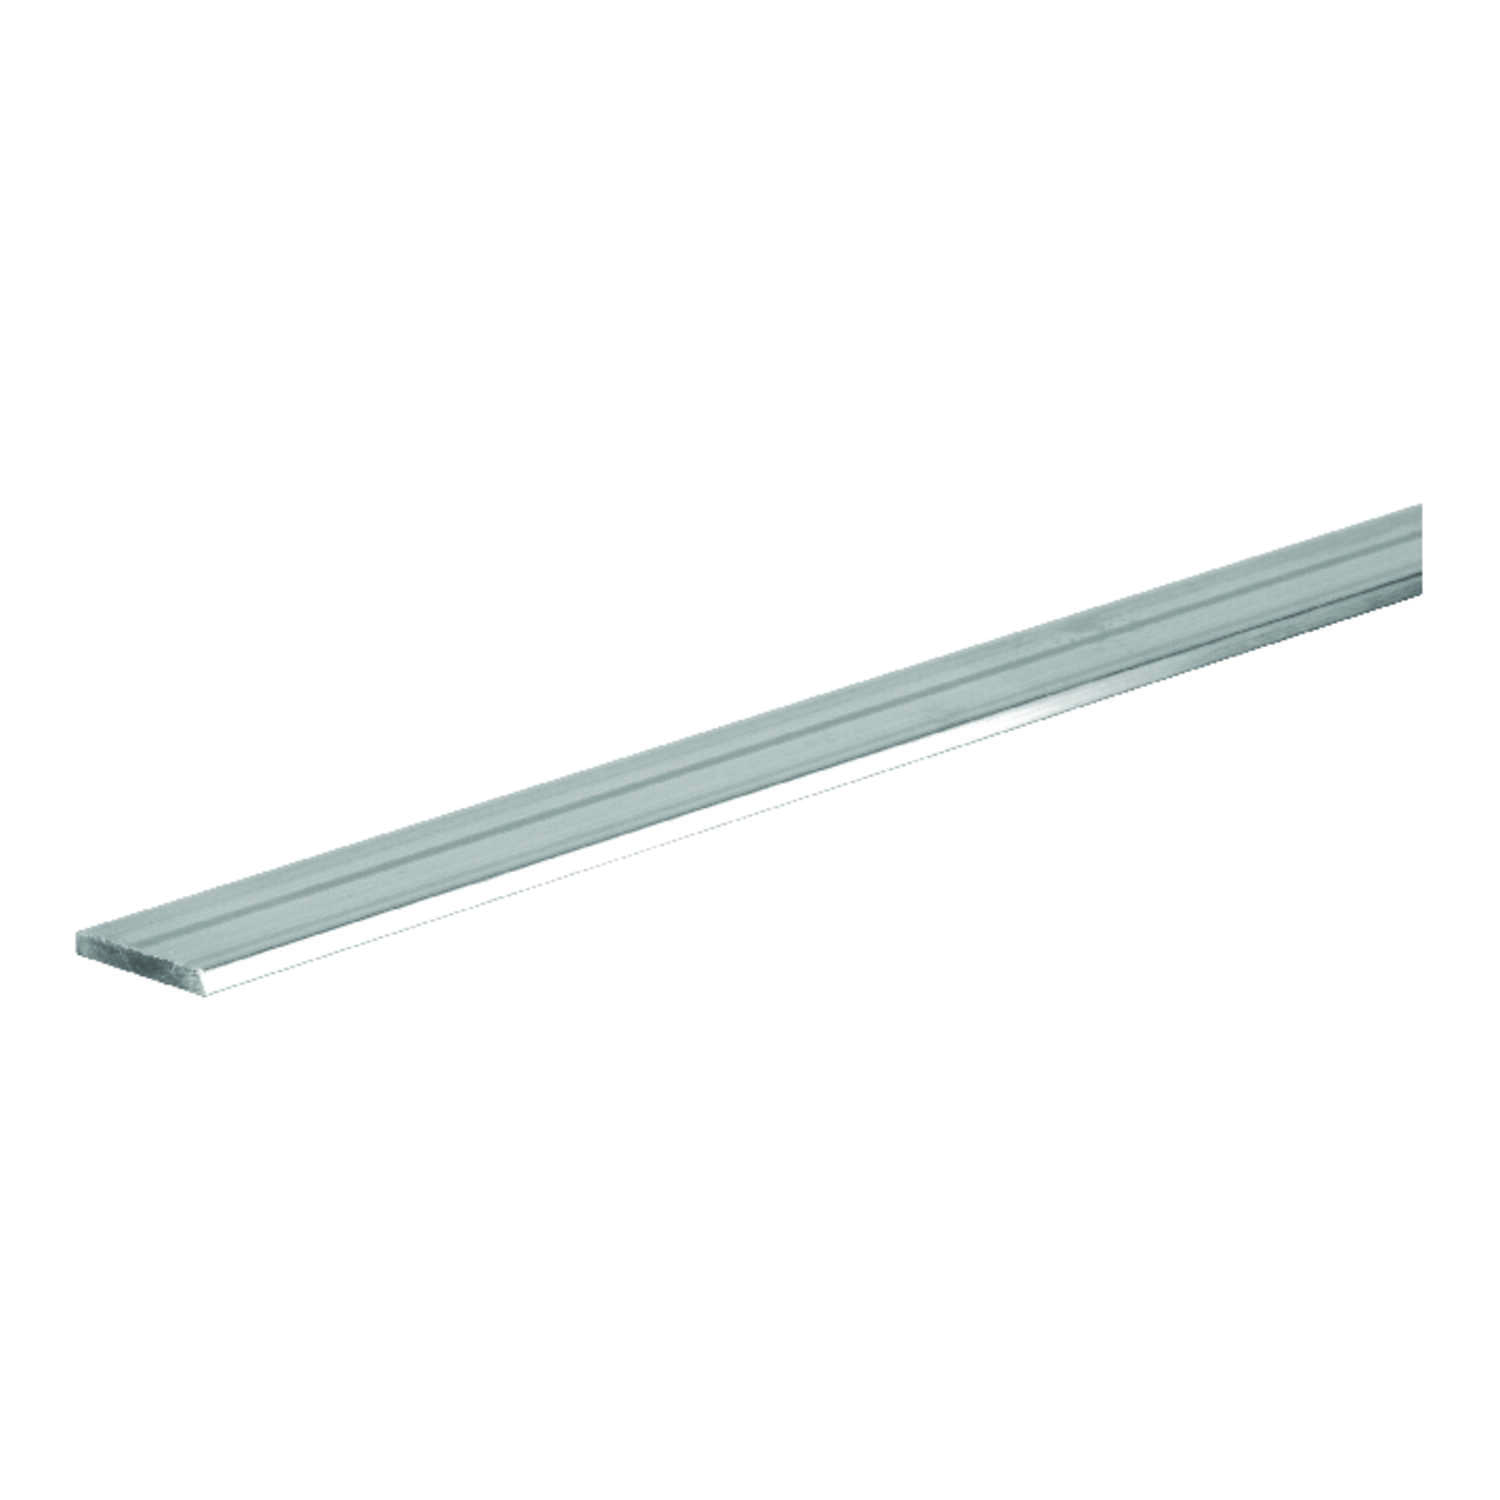 Boltmaster  0.125 in.  x 1.5 in. W x 4 ft. L Weldable Aluminum Flat Bar  1 pk